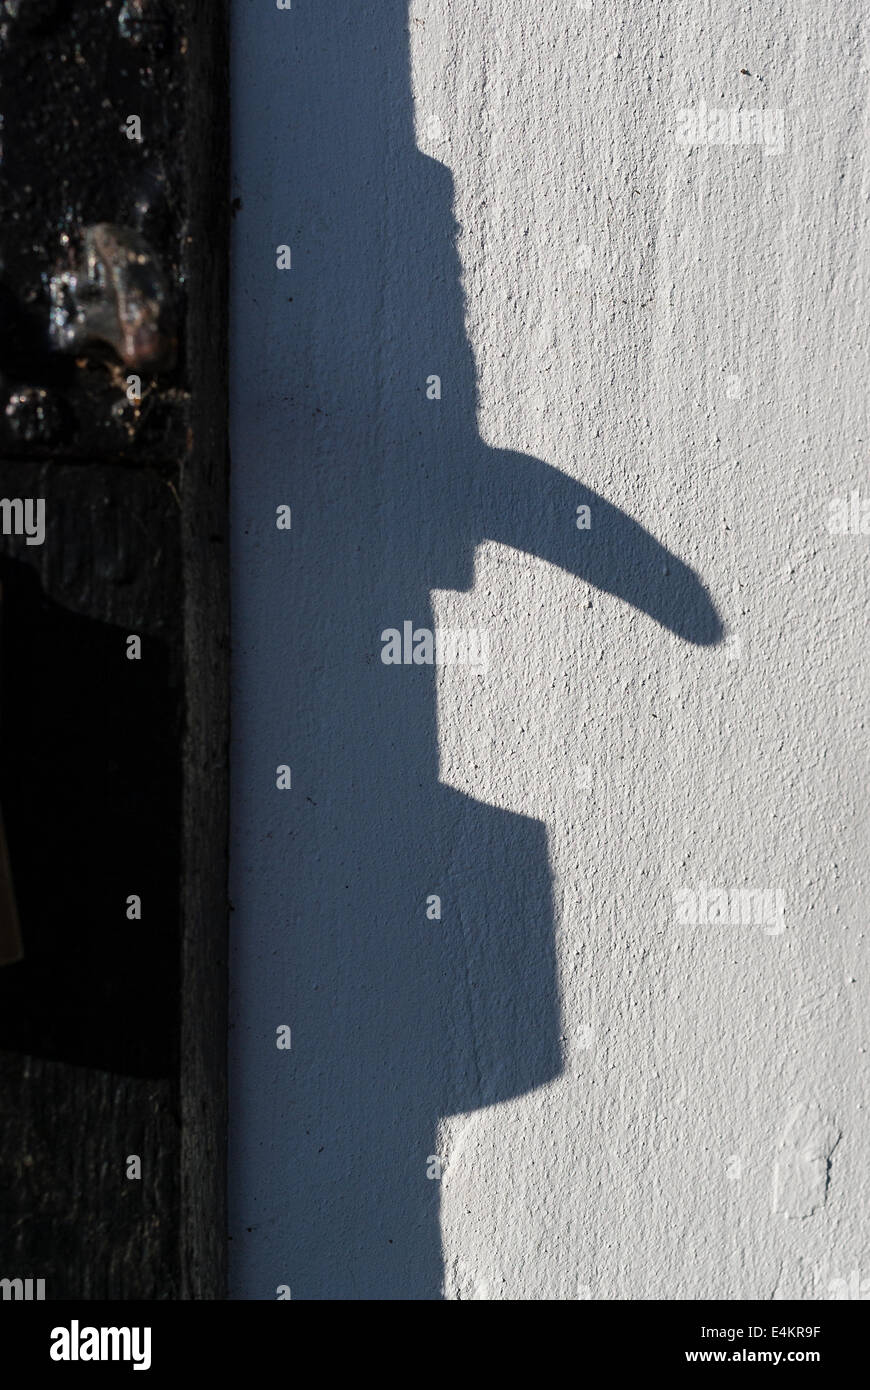 Nose-like shadow cast by old door handle - Stock Image